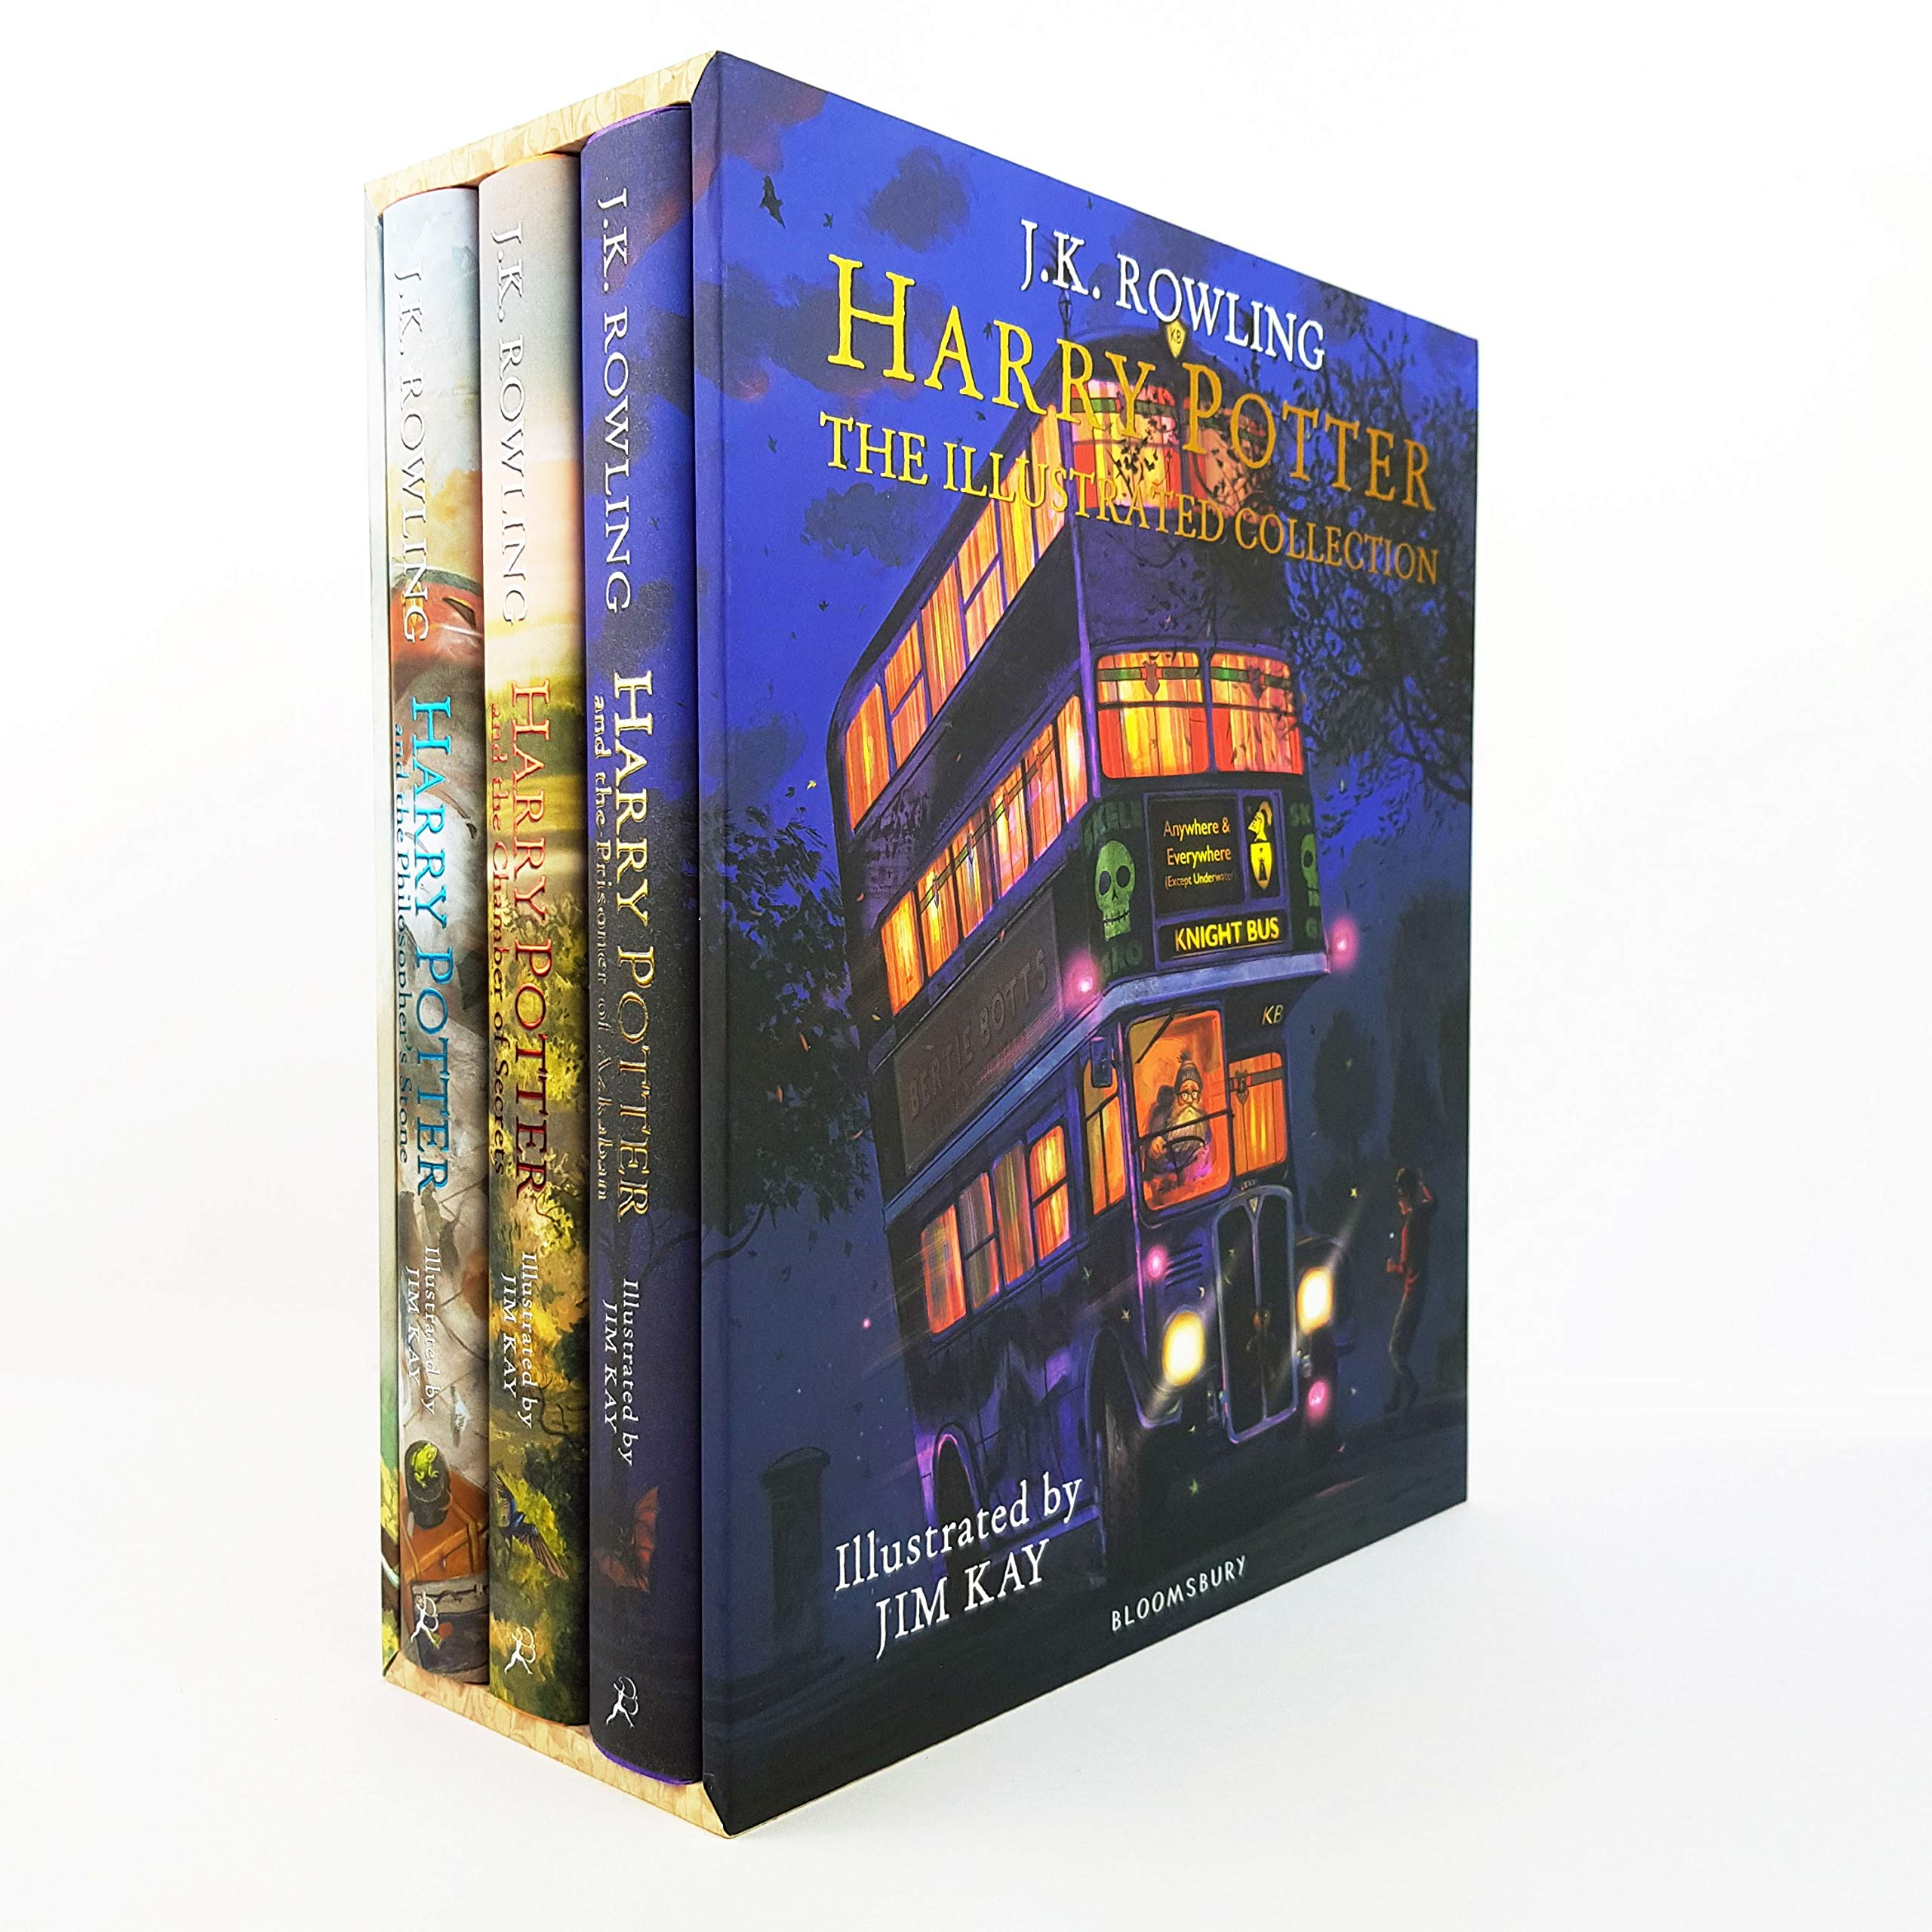 Amazon.fr - Harry Potter - The Illustrated Collection - Rowling, J.K. -  Livres